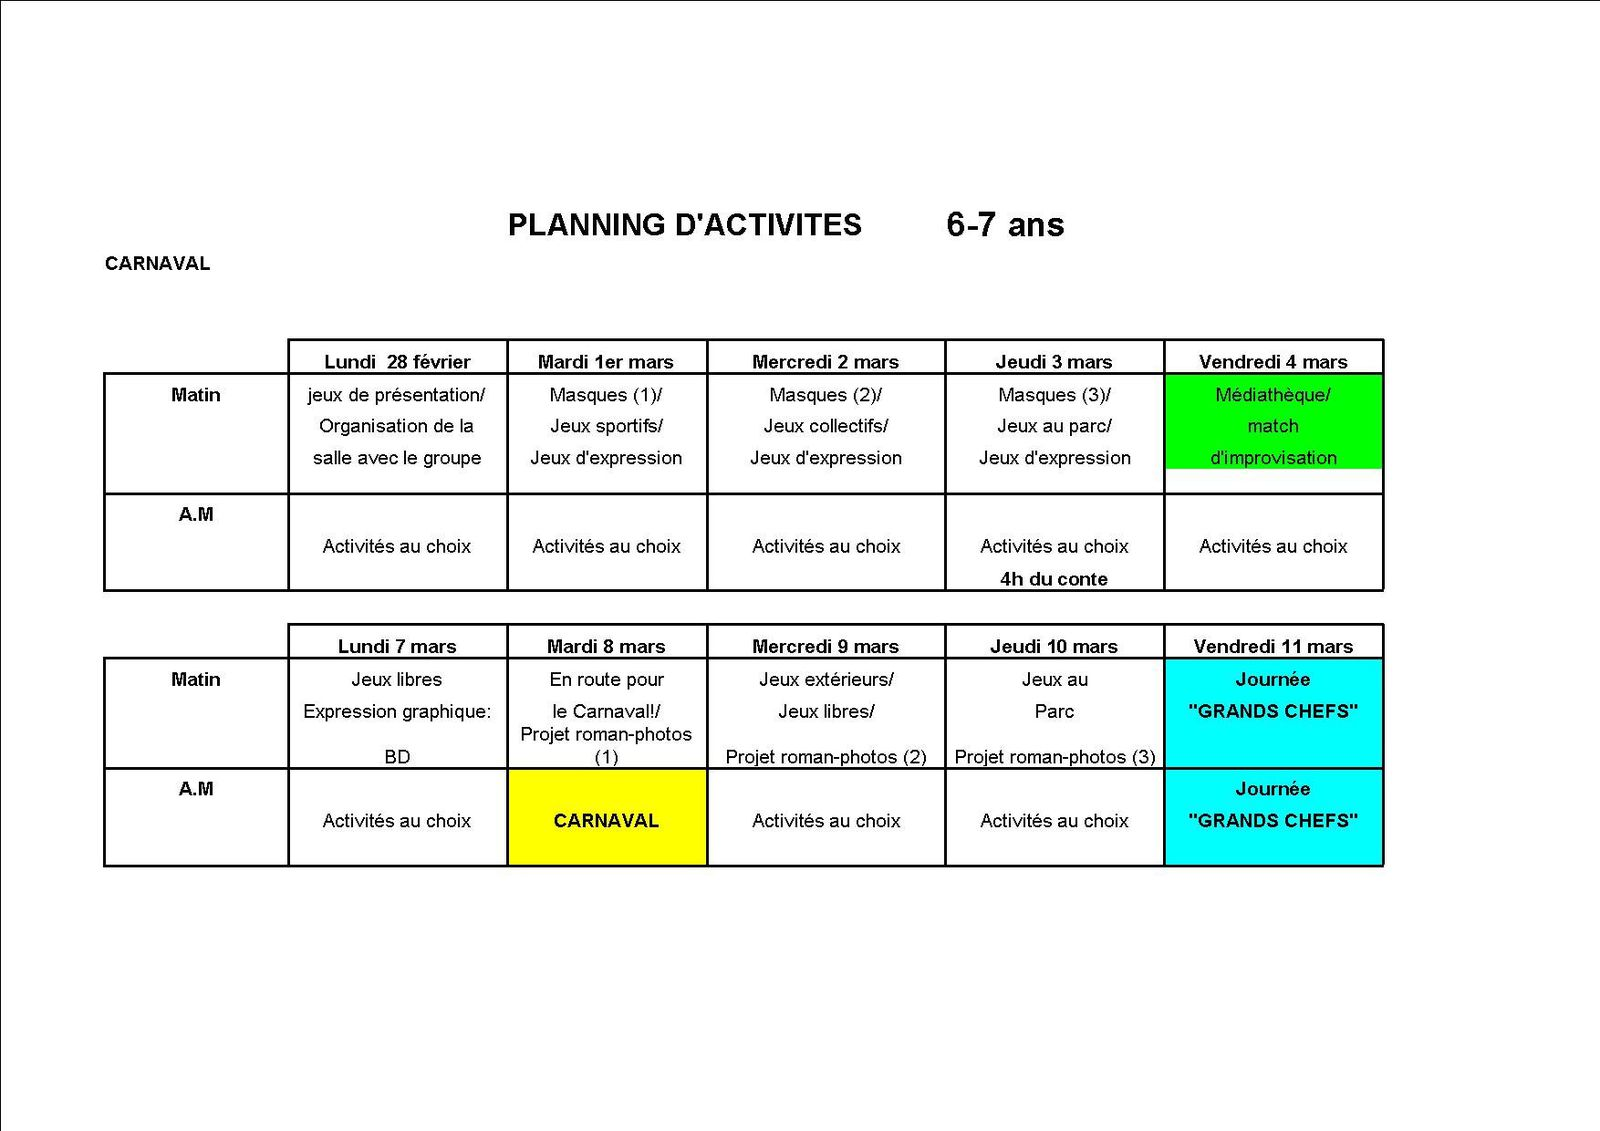 planning--6-7-ans--hiver-2011.jpg